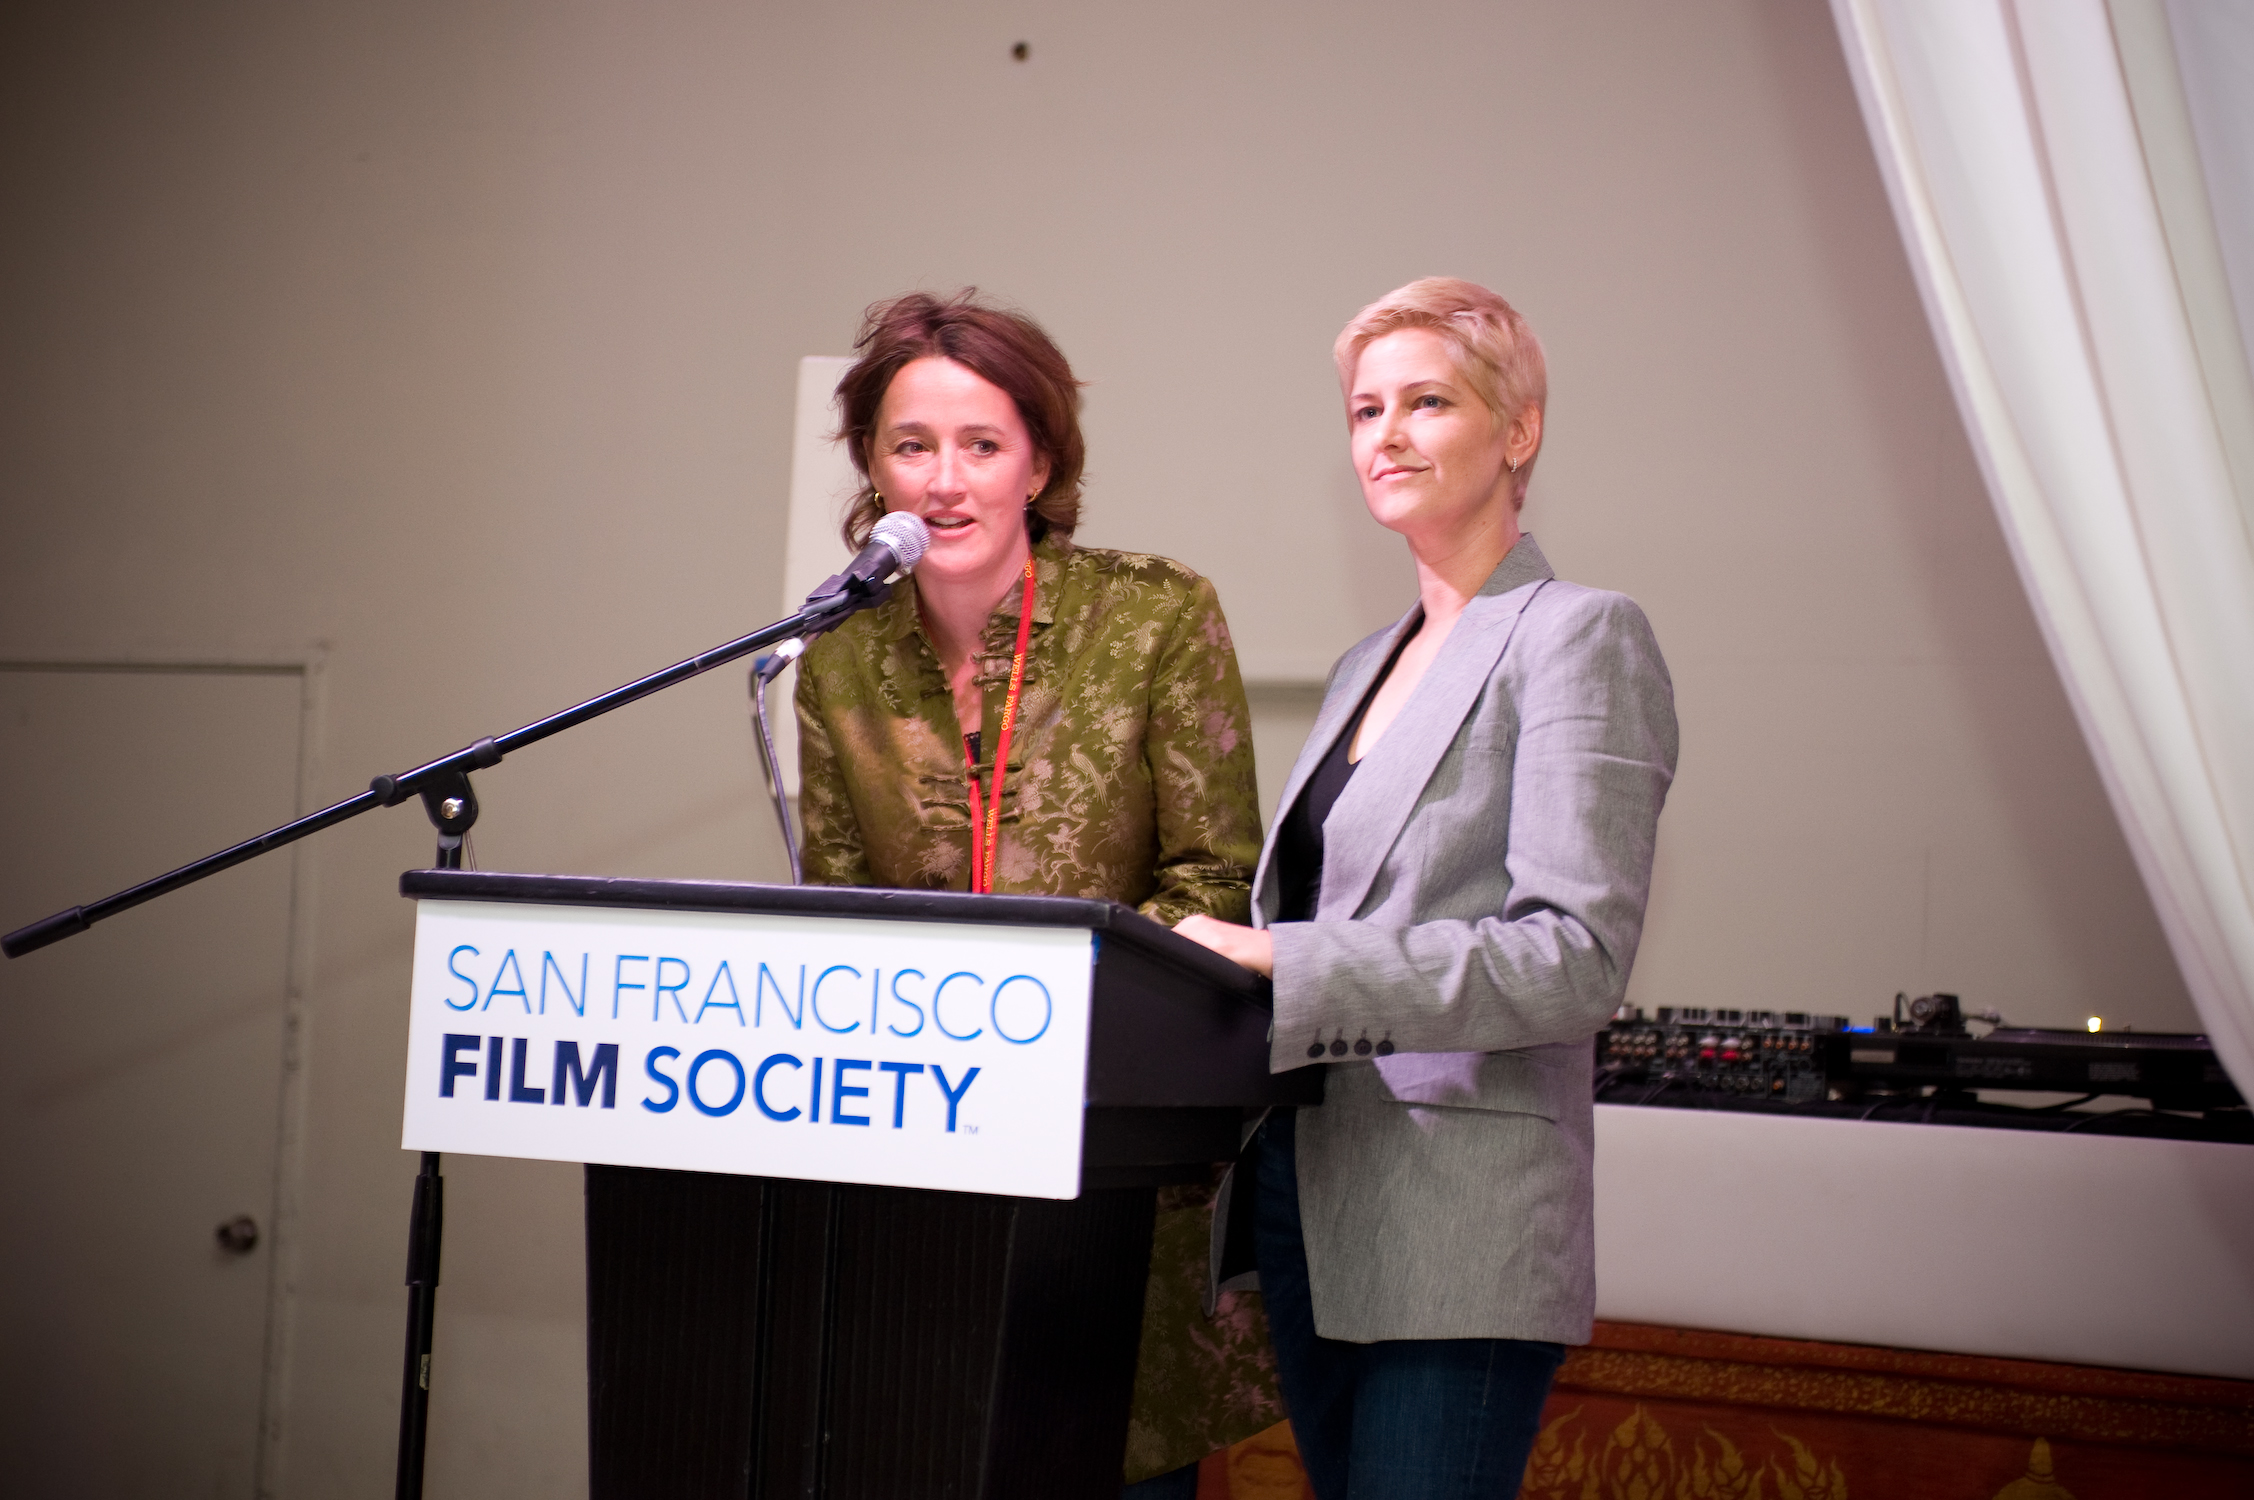 5 Years of Partnership: Jen Rainin on the SF Film Society & the Power of Narrative Film